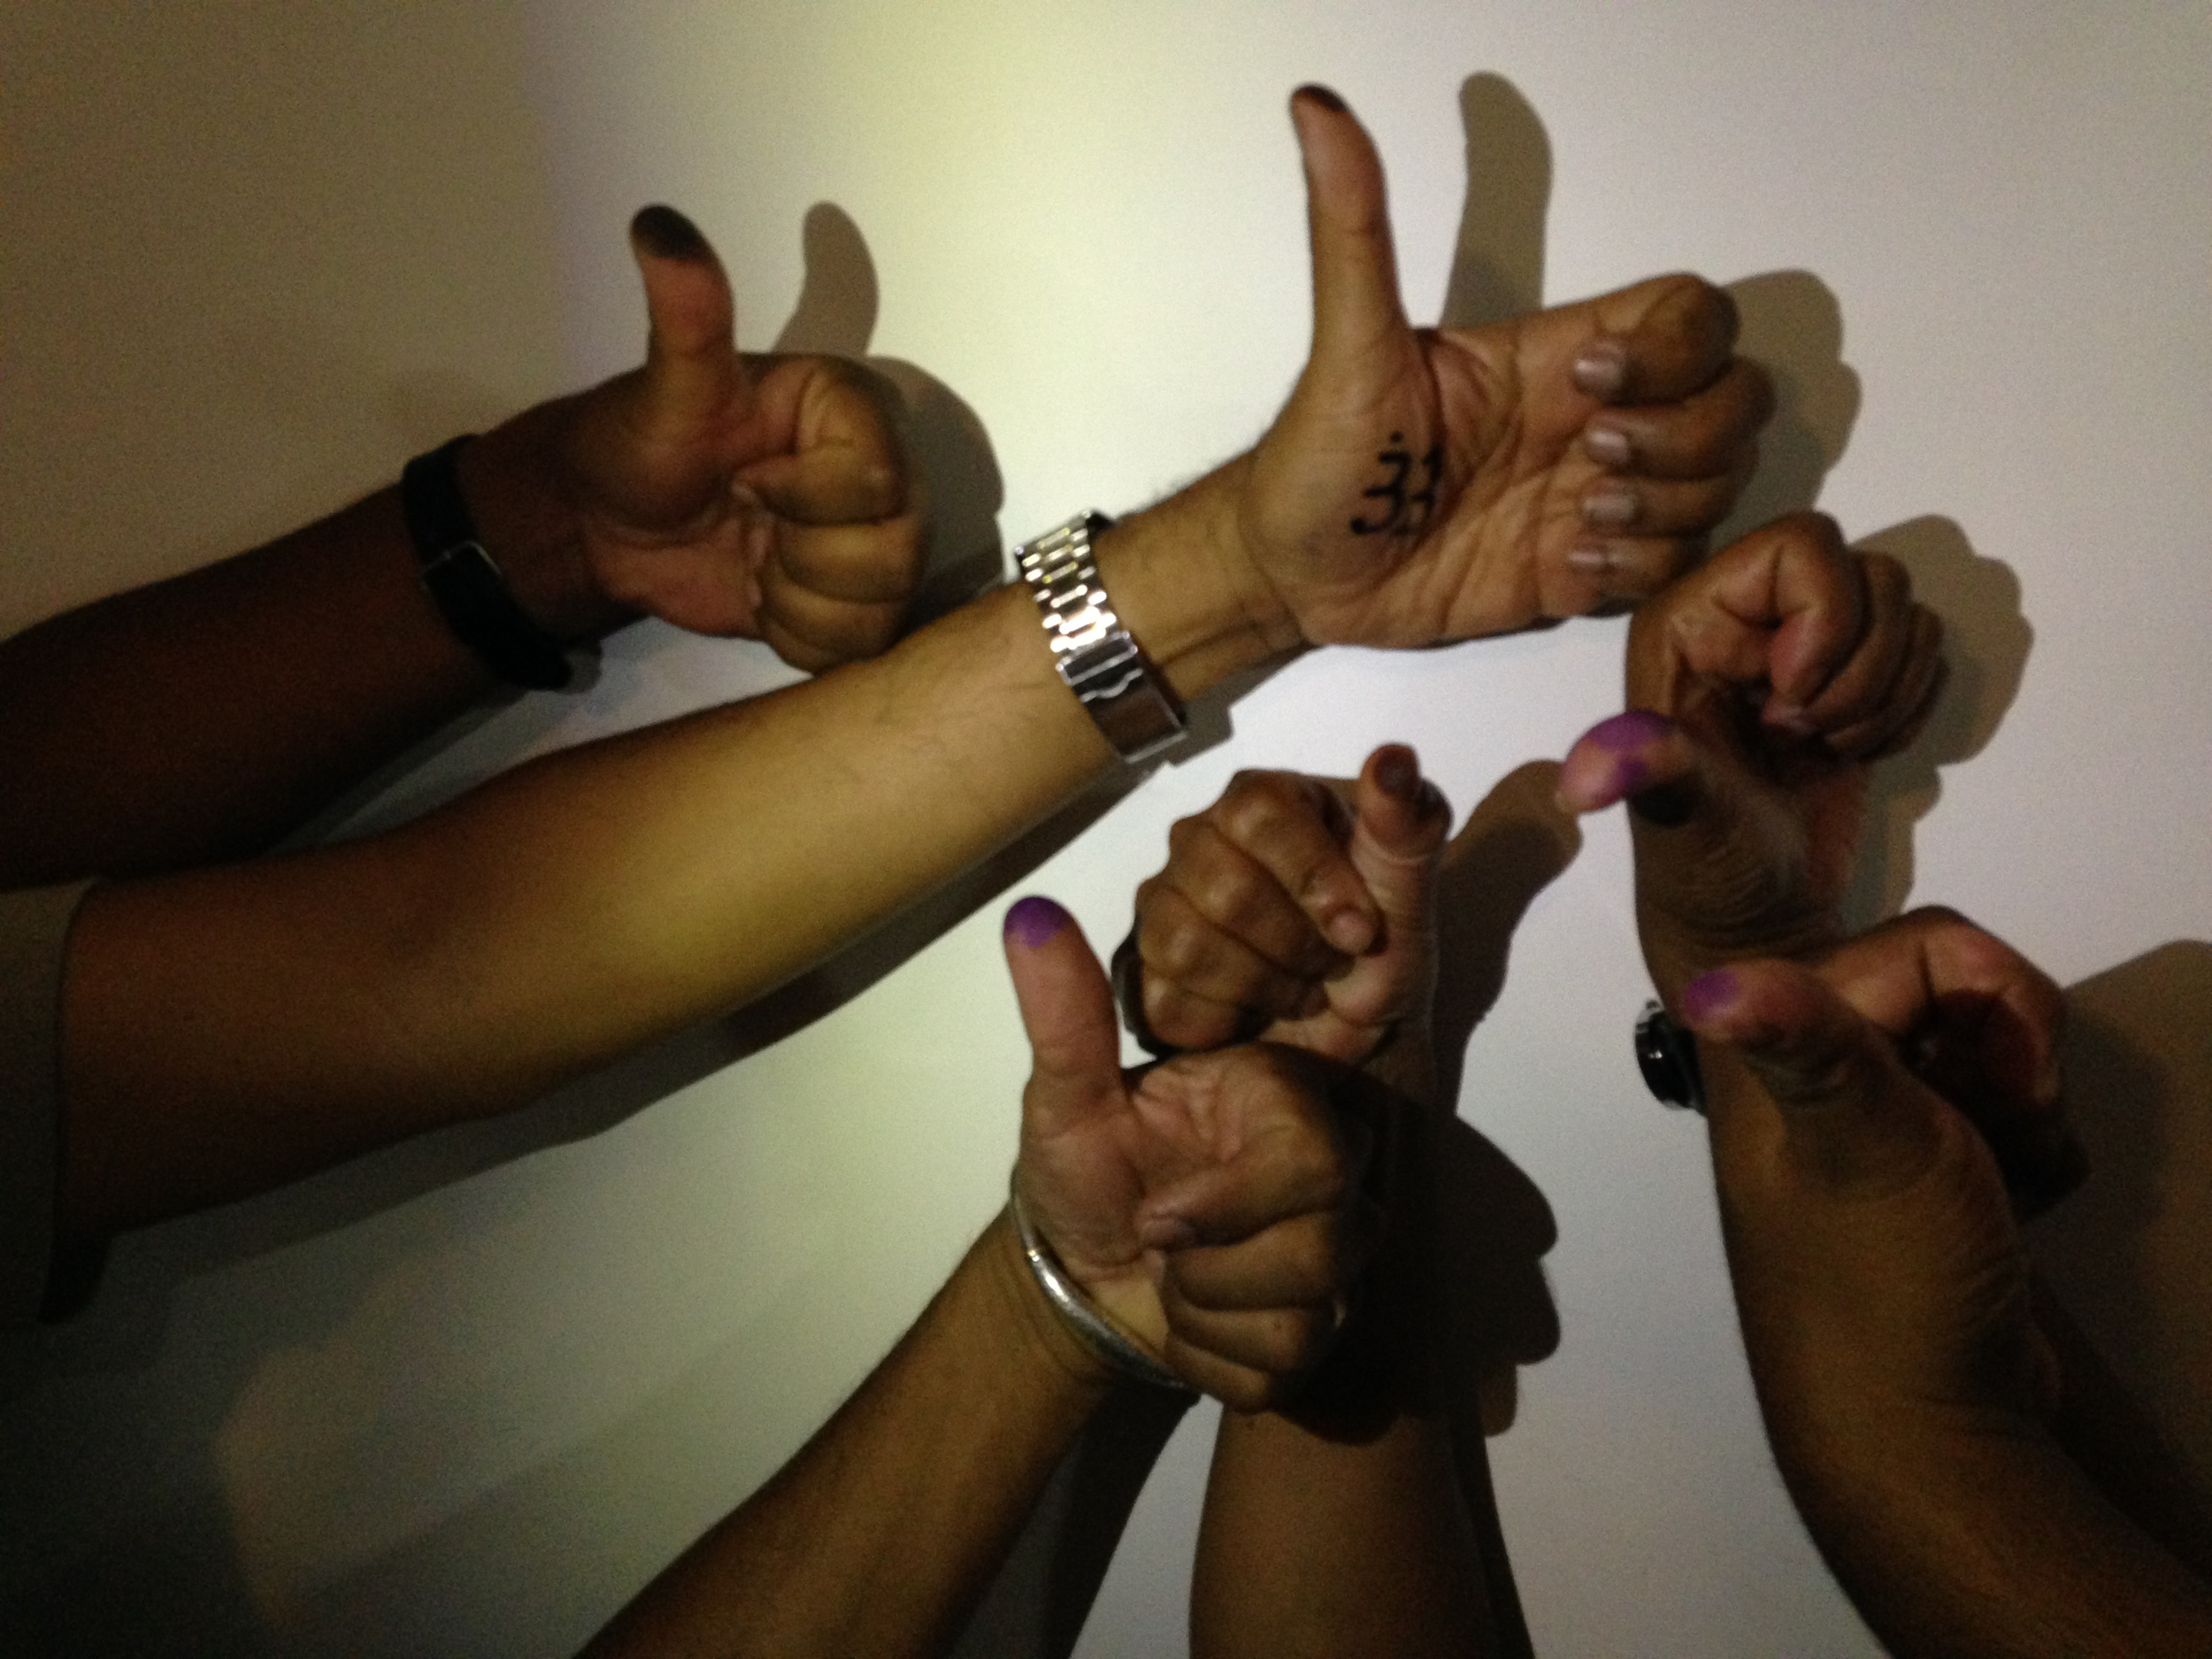 Our guests proudly displayed their 'inked' thumbs proving they had voted for hopefully a new future.